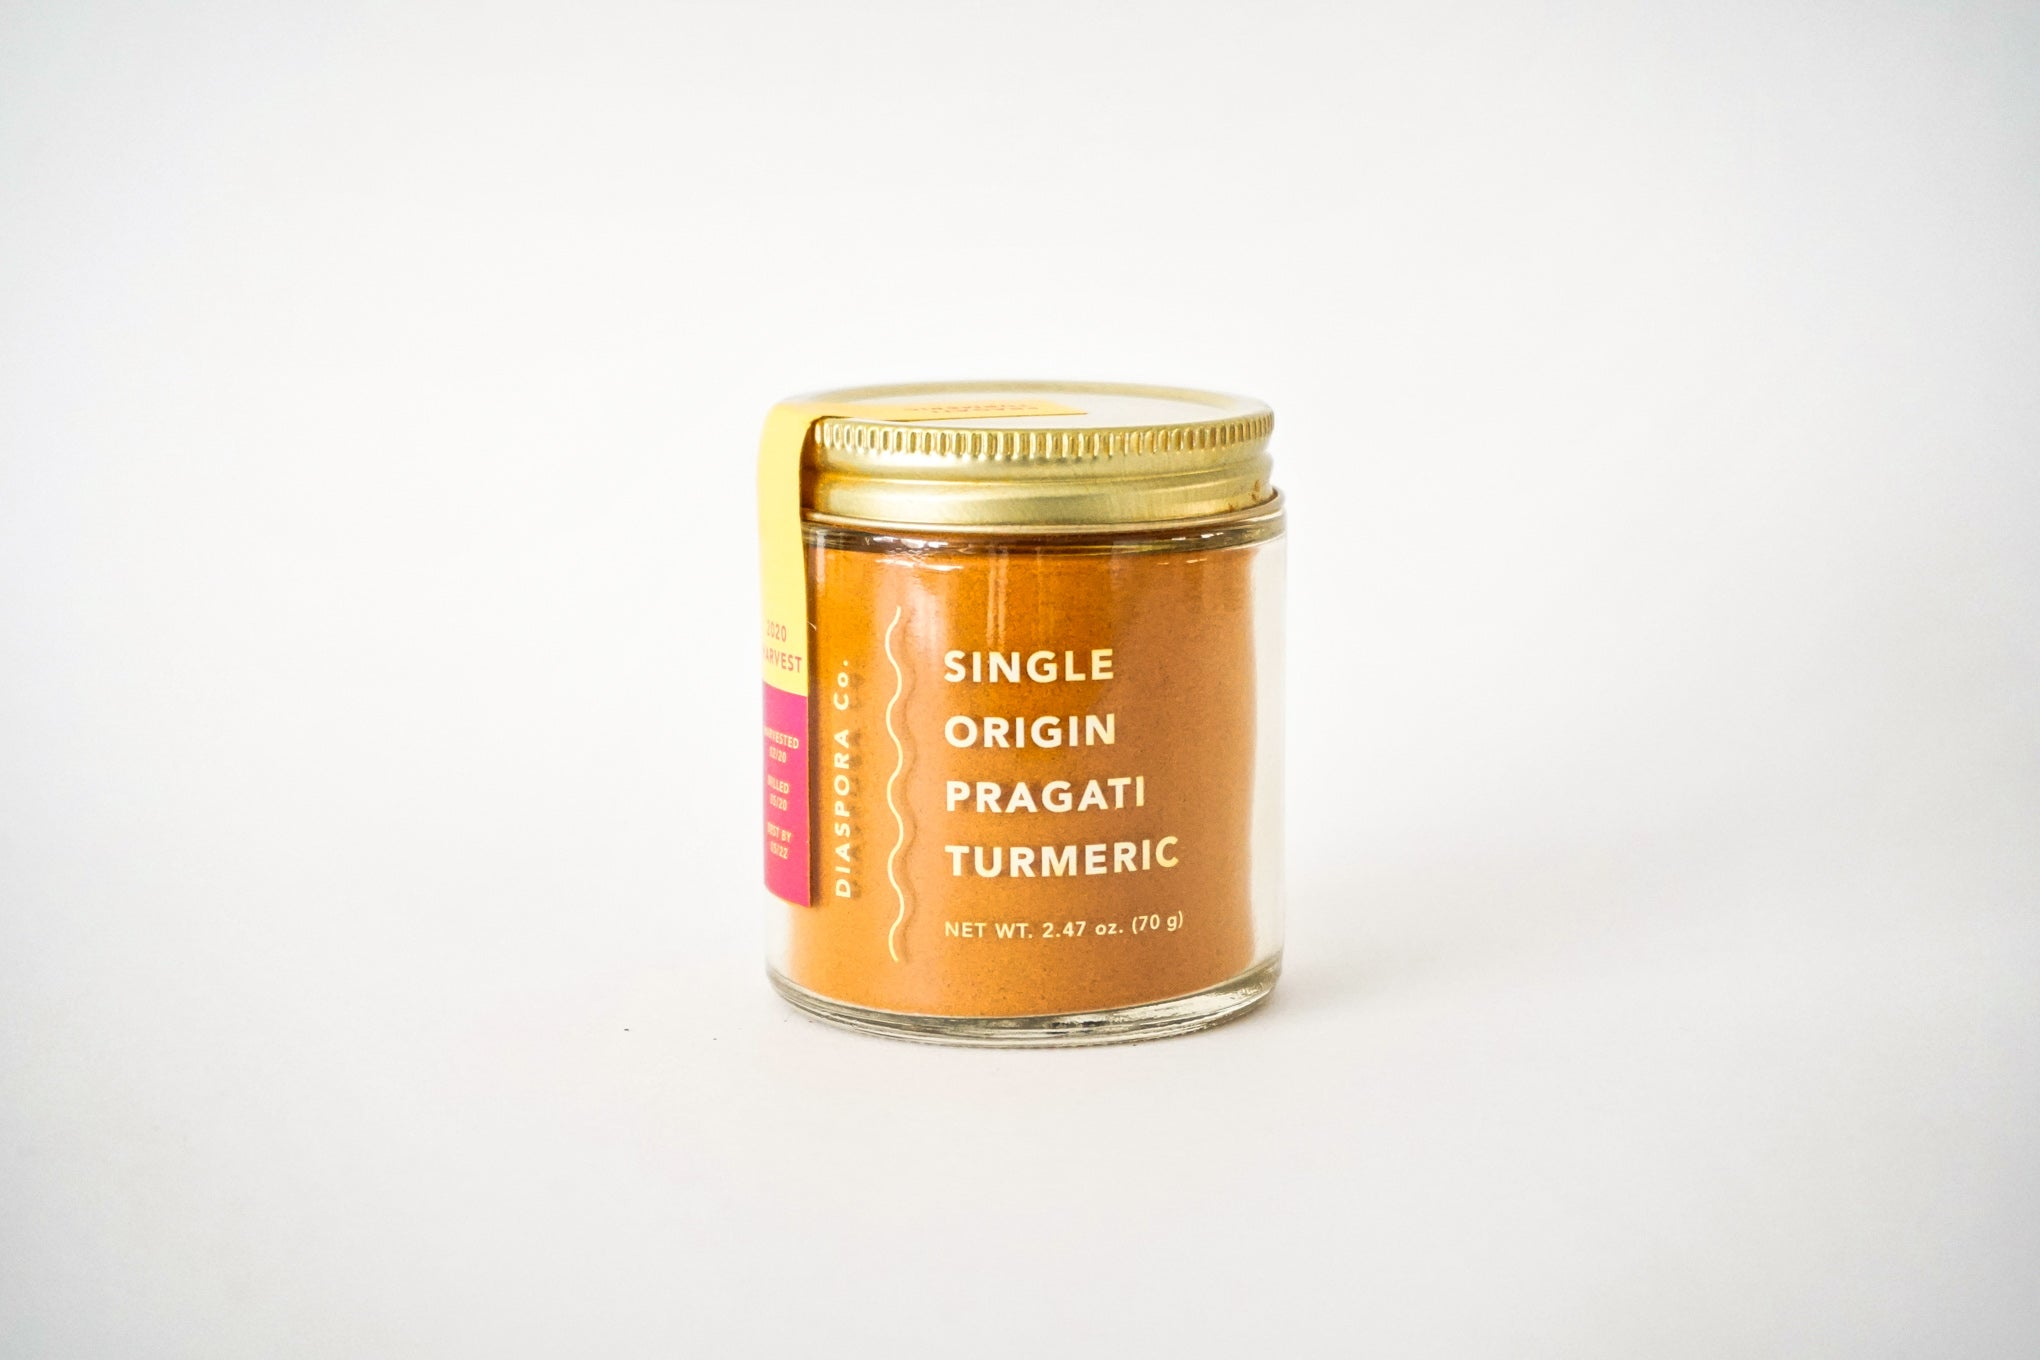 Single Origin Pragati Turmeric